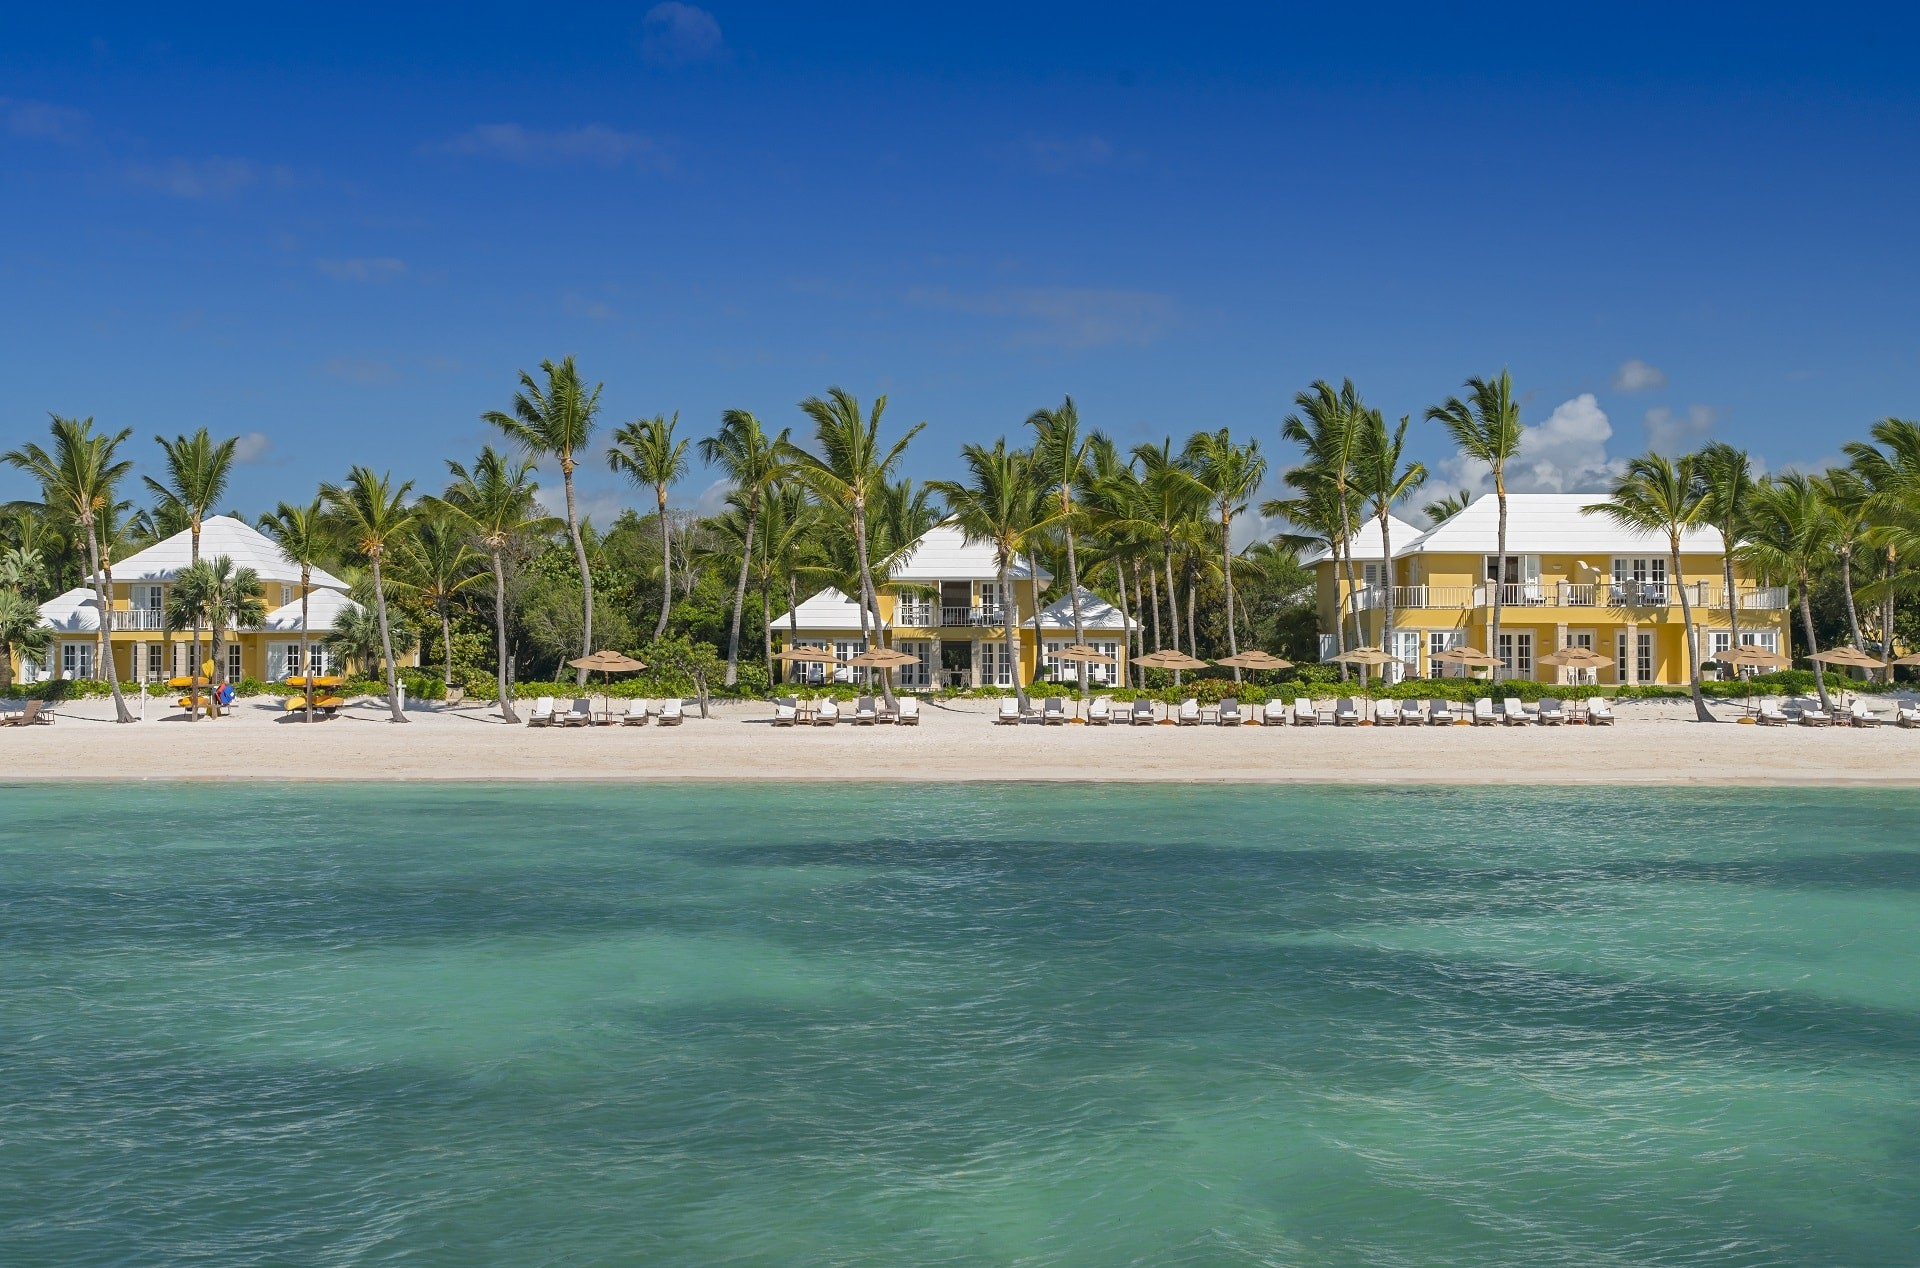 Punta Cana Resorts >> Puntacana Resort Club Is Home To The Caribbean S Ultimate Beach